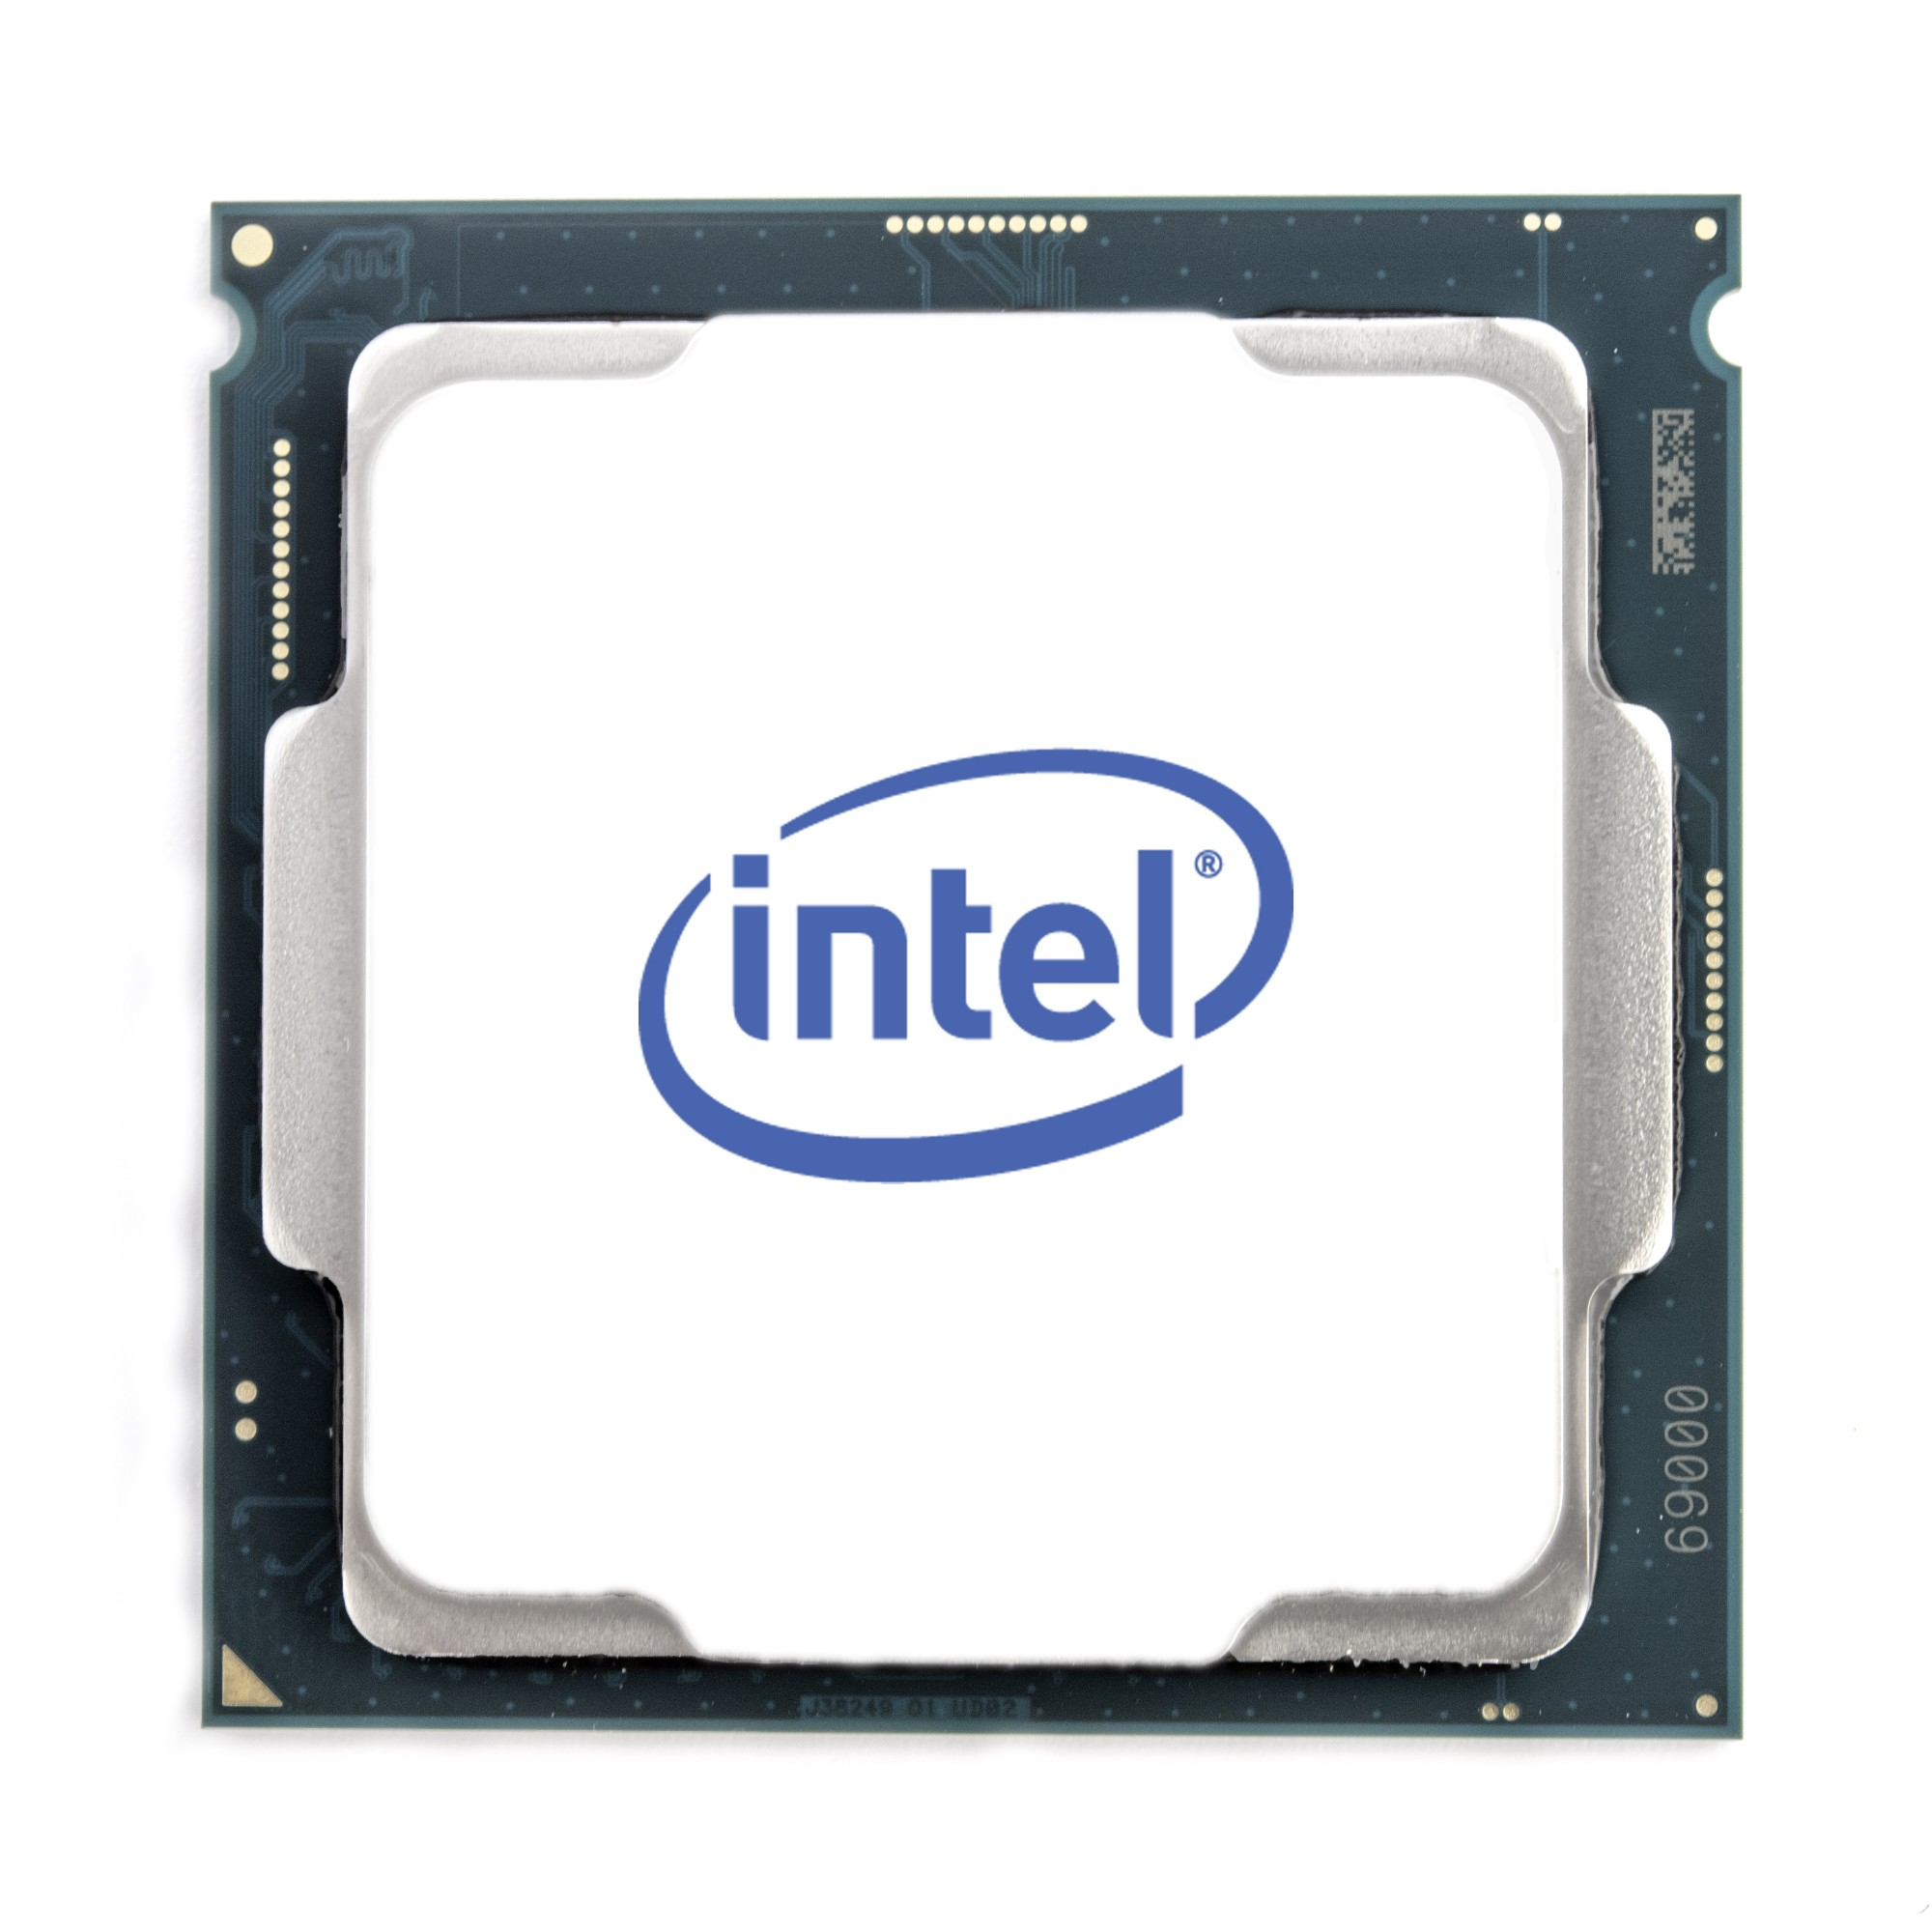 CPU Intel Core i7-9700T / LGA1151v2 / Tray ### 8 Cores / 8 Threads / 12M Cache